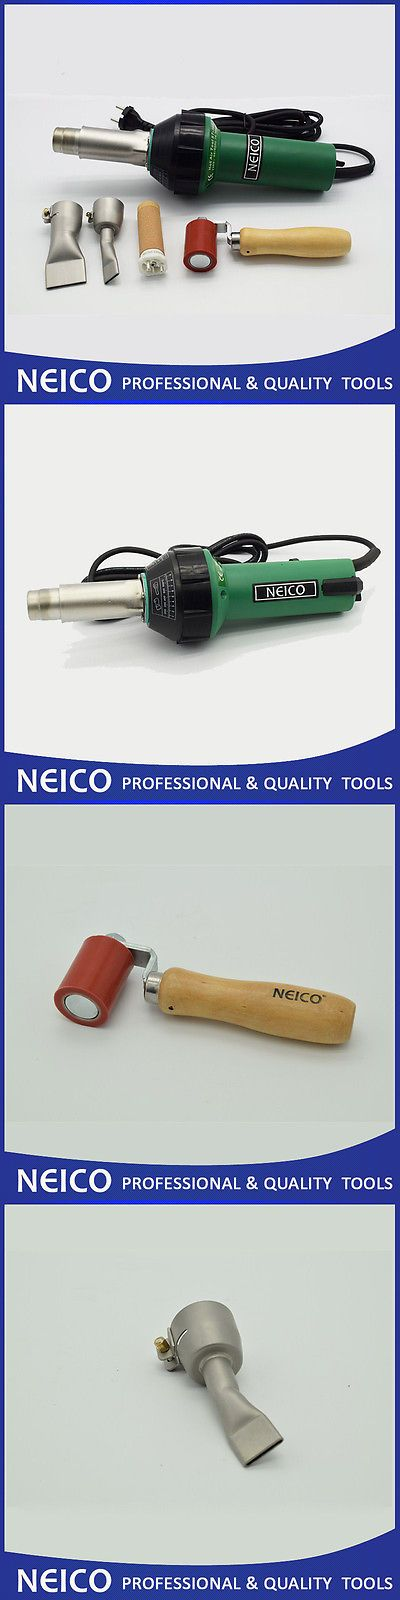 Heat Guns 66797: 110V Or 230V 1600W Hot Air Welding Tools, Hot Air Welder, Heat Gun -> BUY IT NOW ONLY: $175 on eBay!